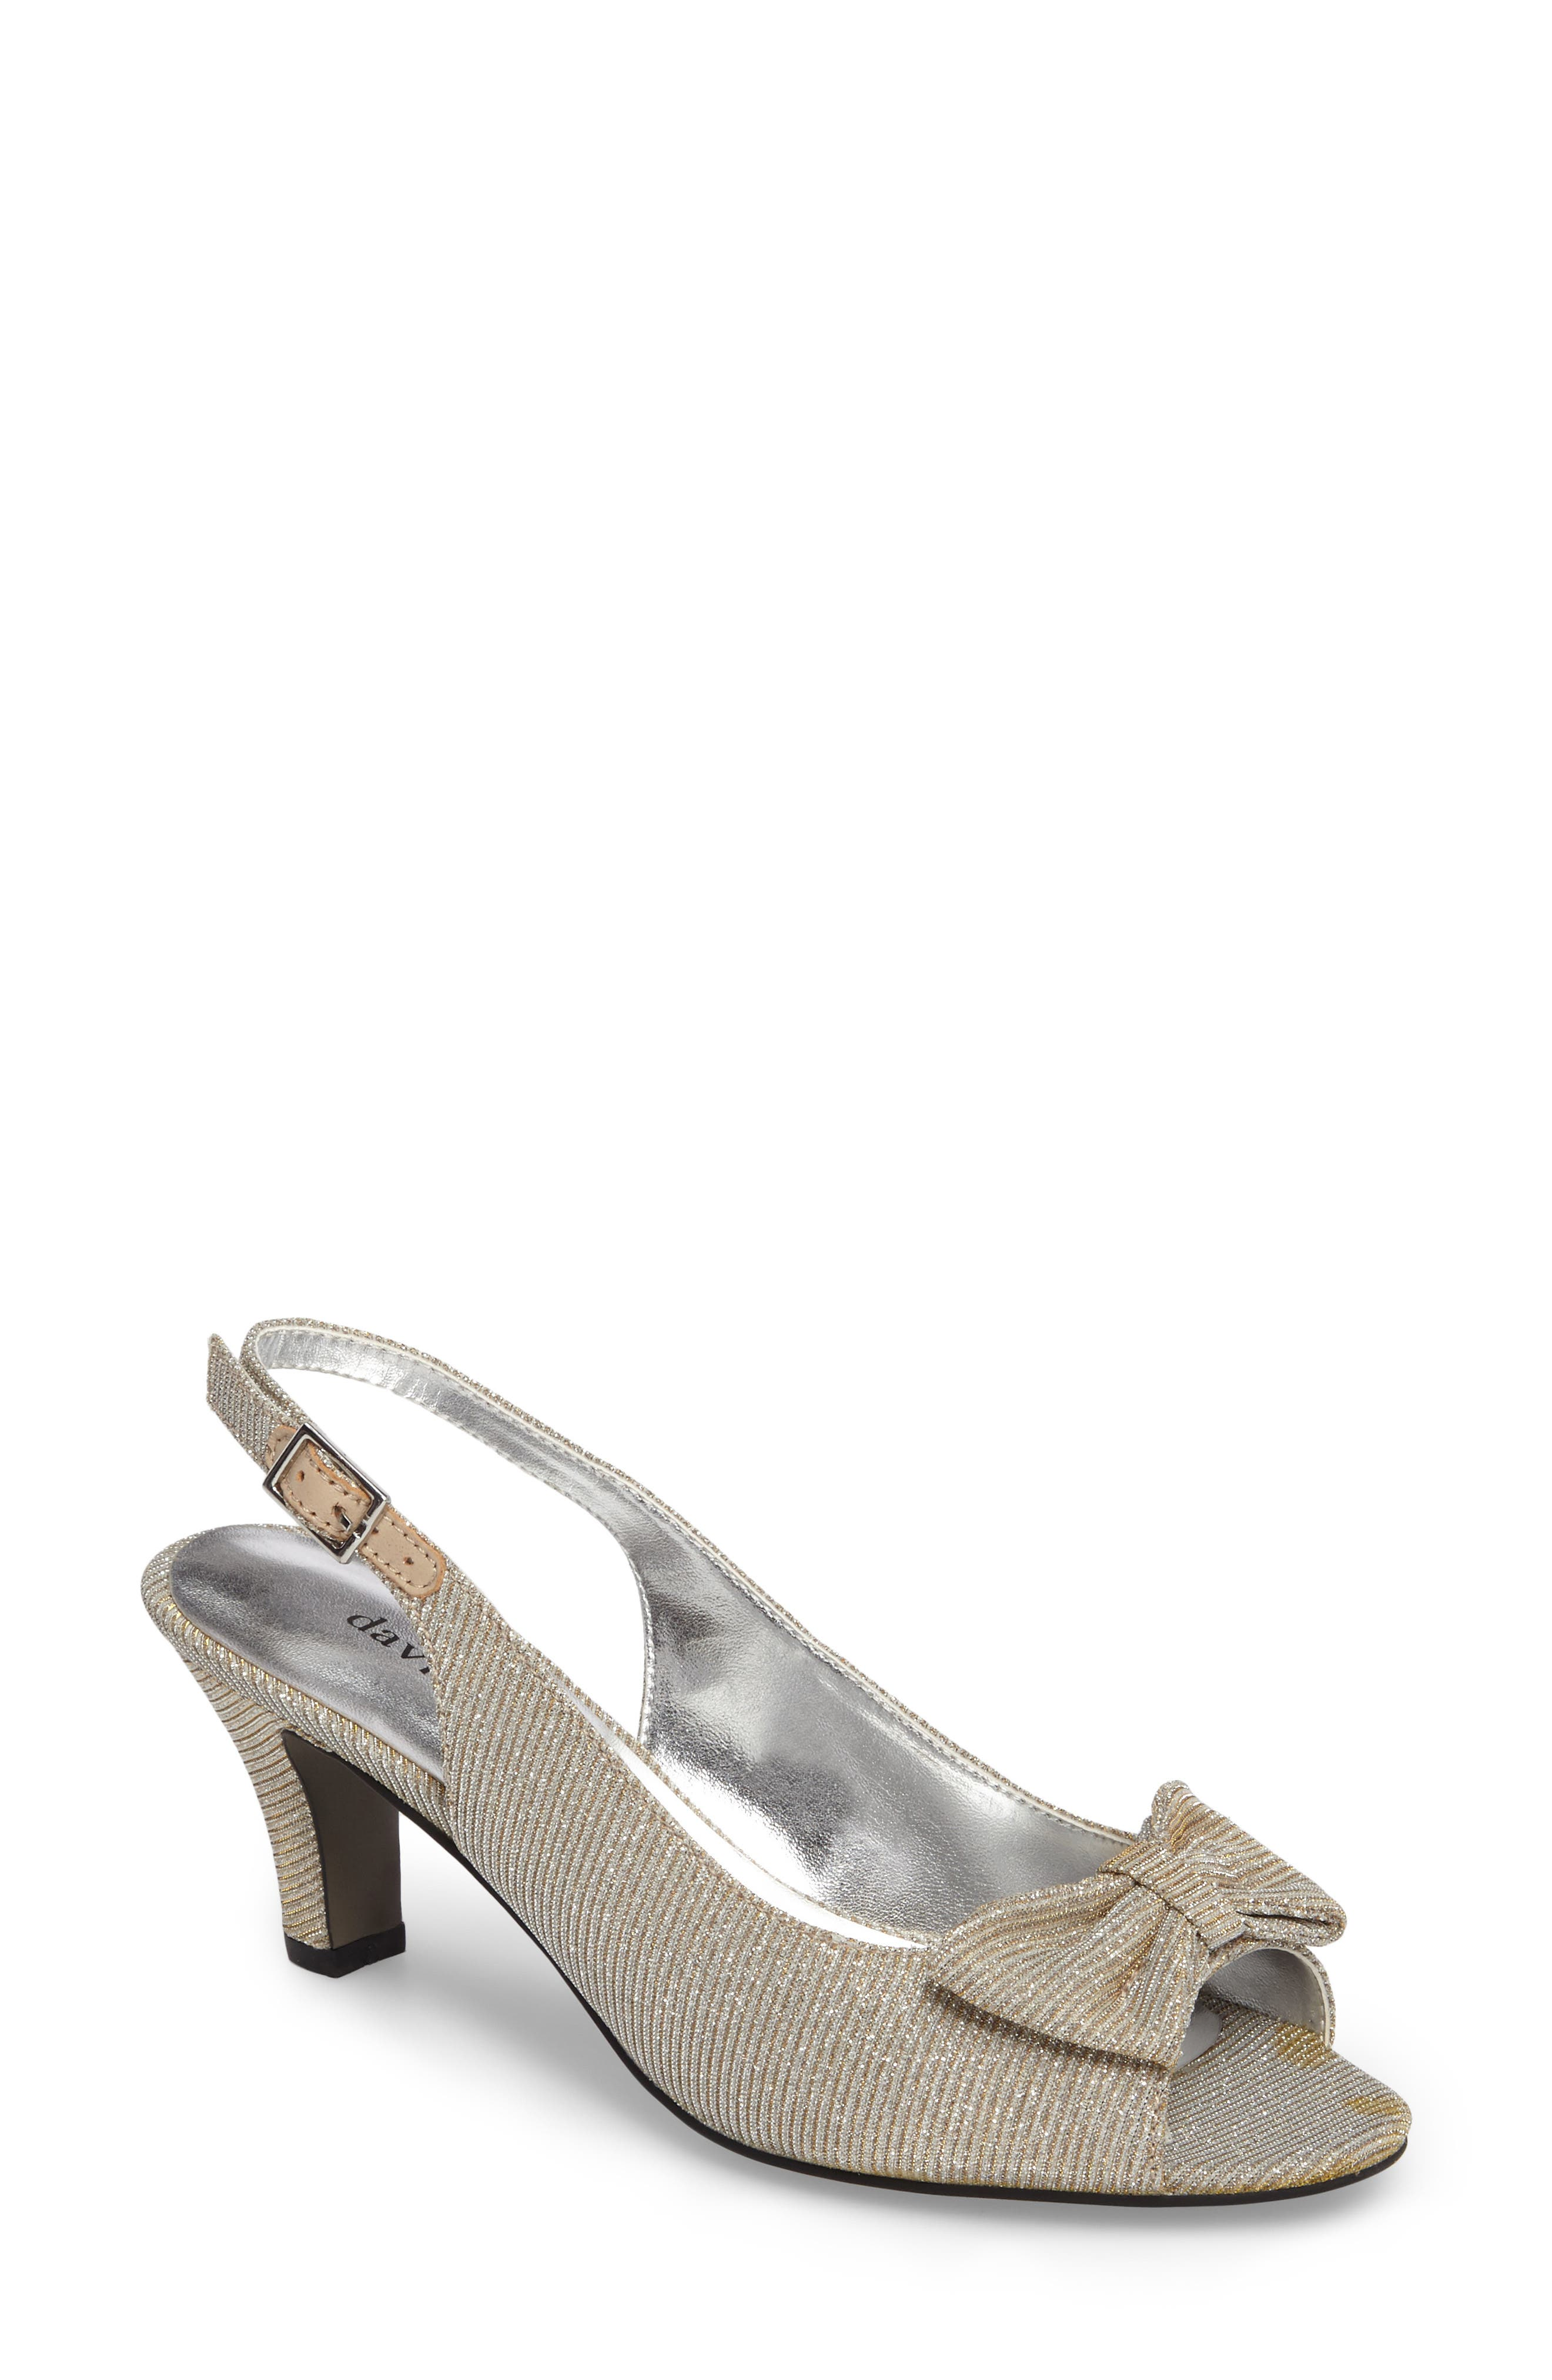 Alternate Image 1 Selected - David Tate Spirit Slingback Sandal (Women)